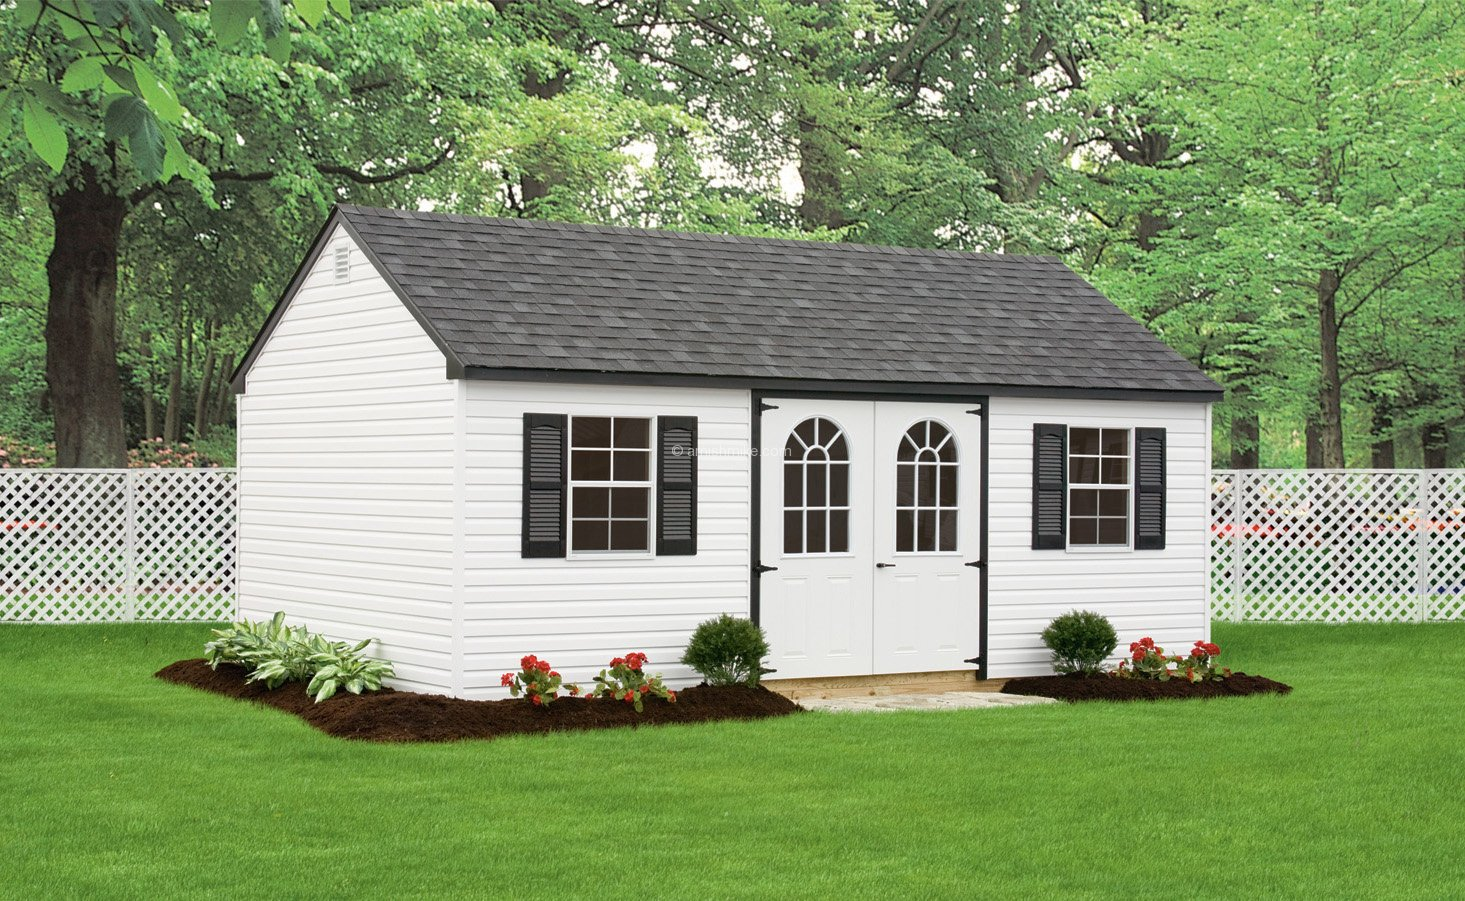 12x20 cape cottage storage shed